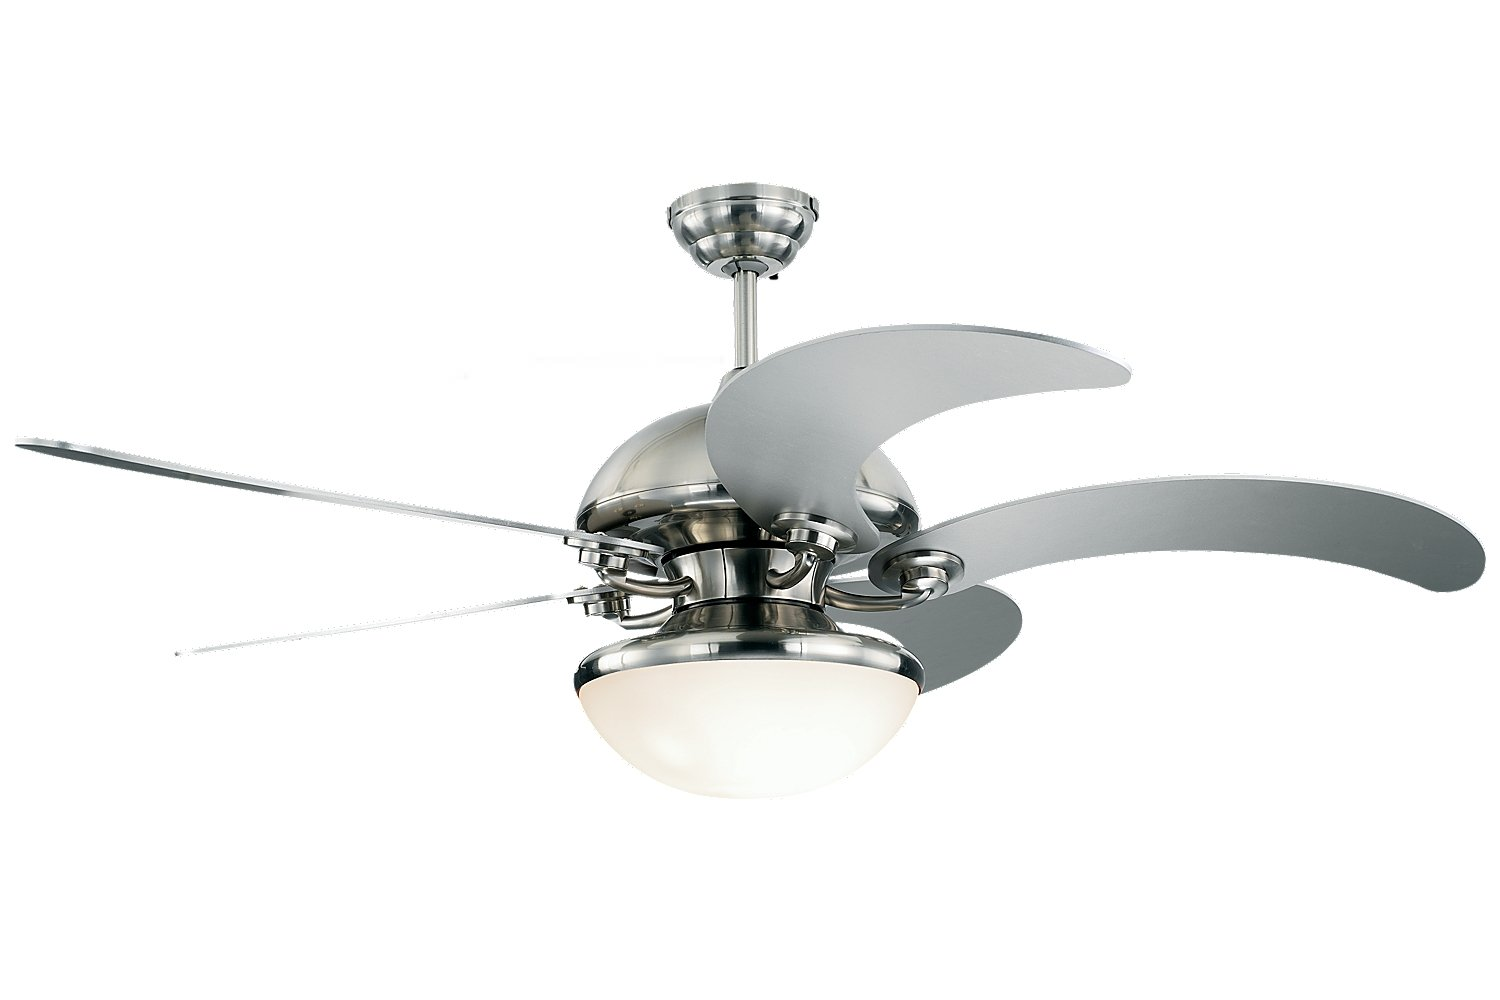 ceiling with shade fan fashionable contemporary design dlrn silver light